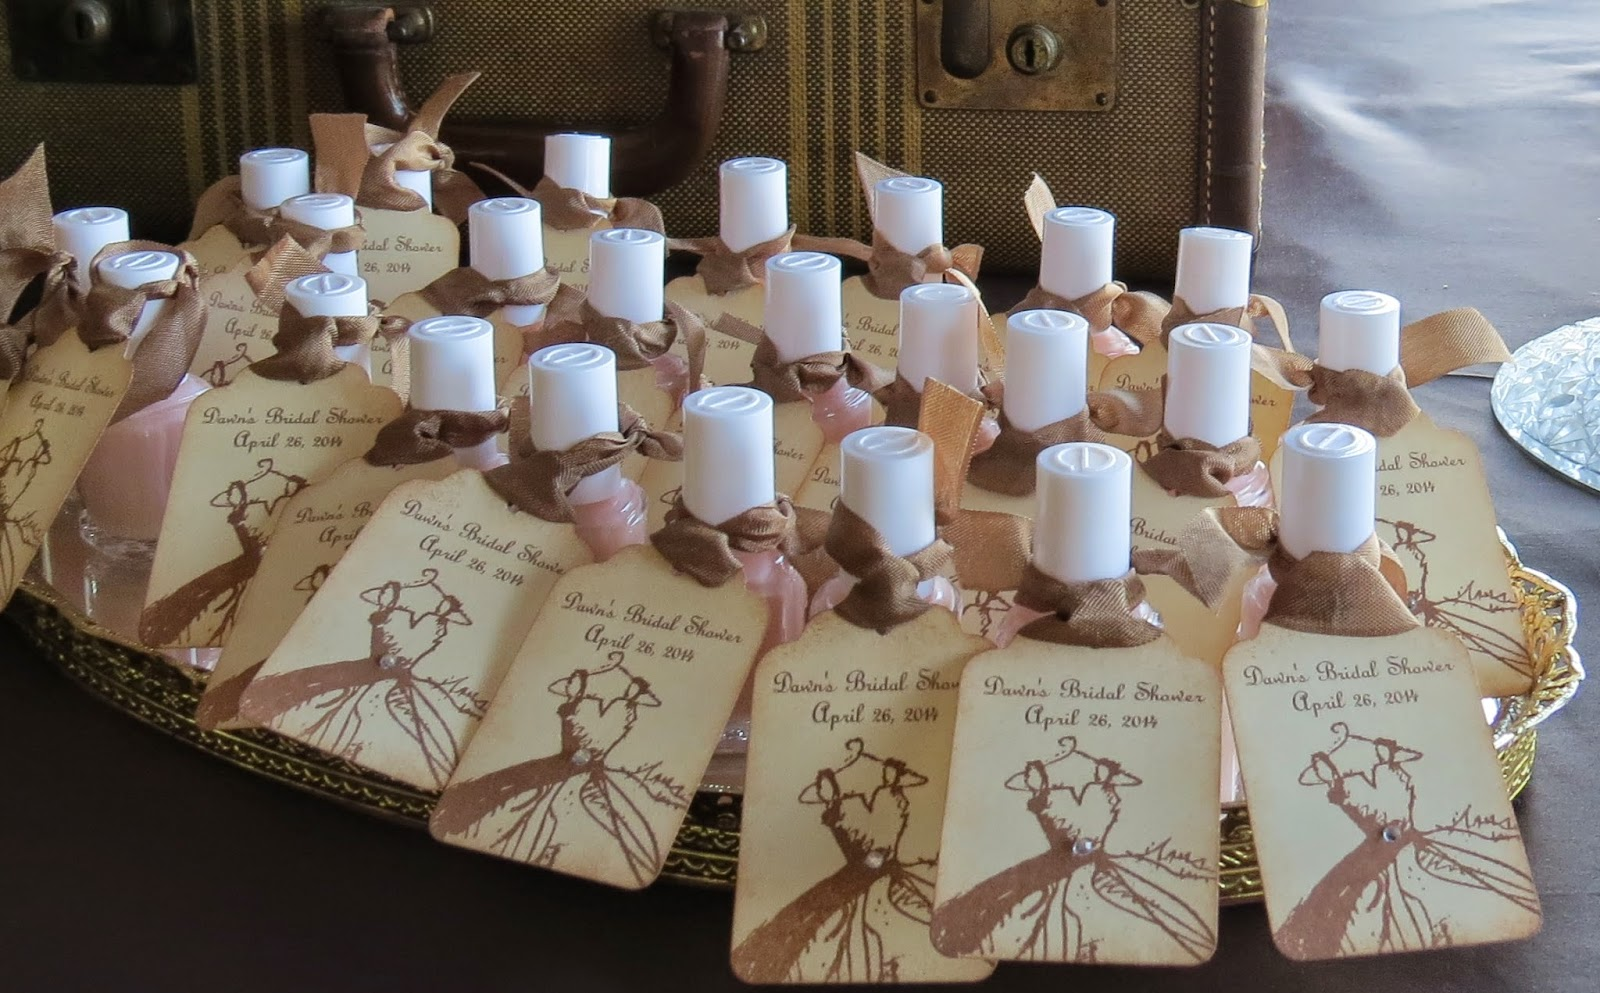 inspiration com spa bags favor evermine weddingblog favors bridal wedding shower weddings